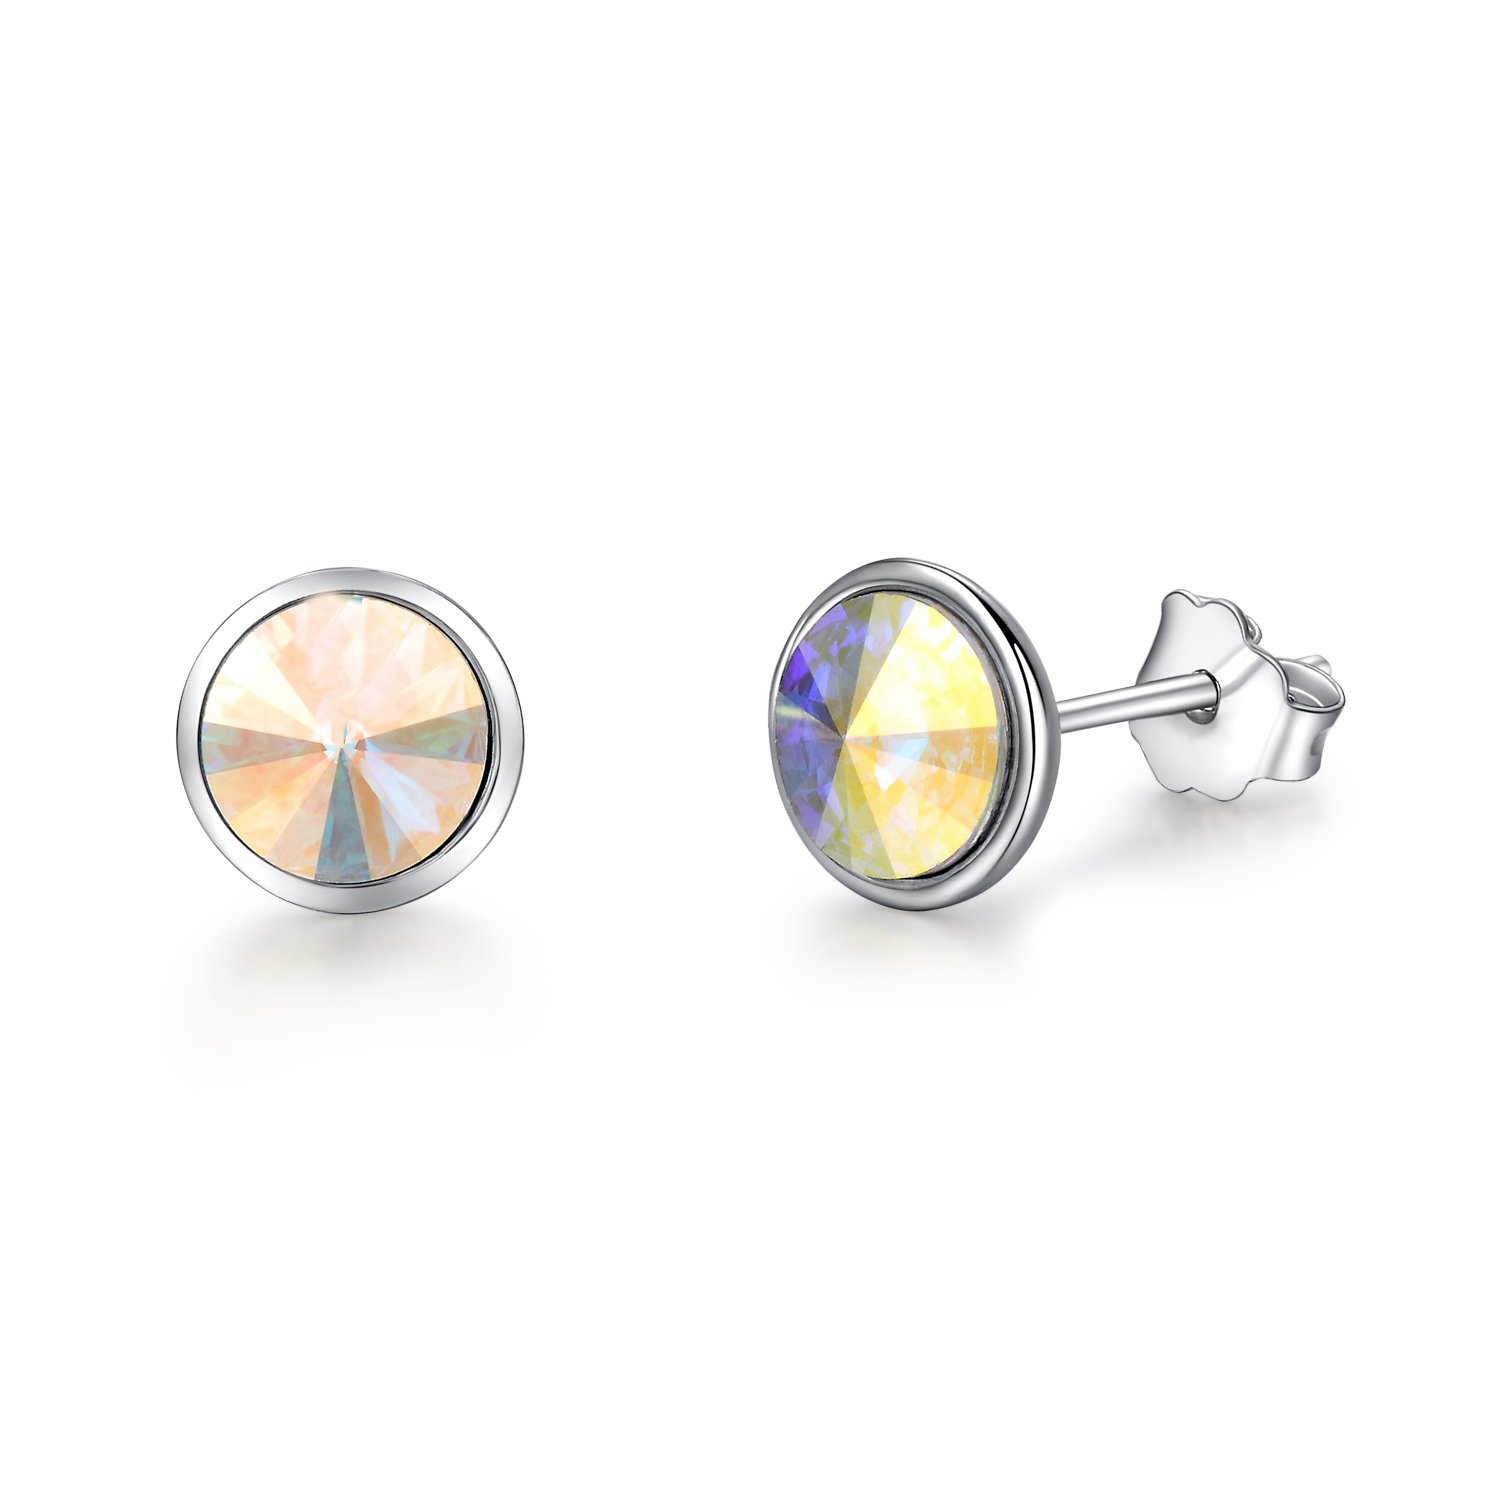 925 Sterling Silver Round Shaped Stud Earrings AB SWAROVSKI ELEMENTS NA13